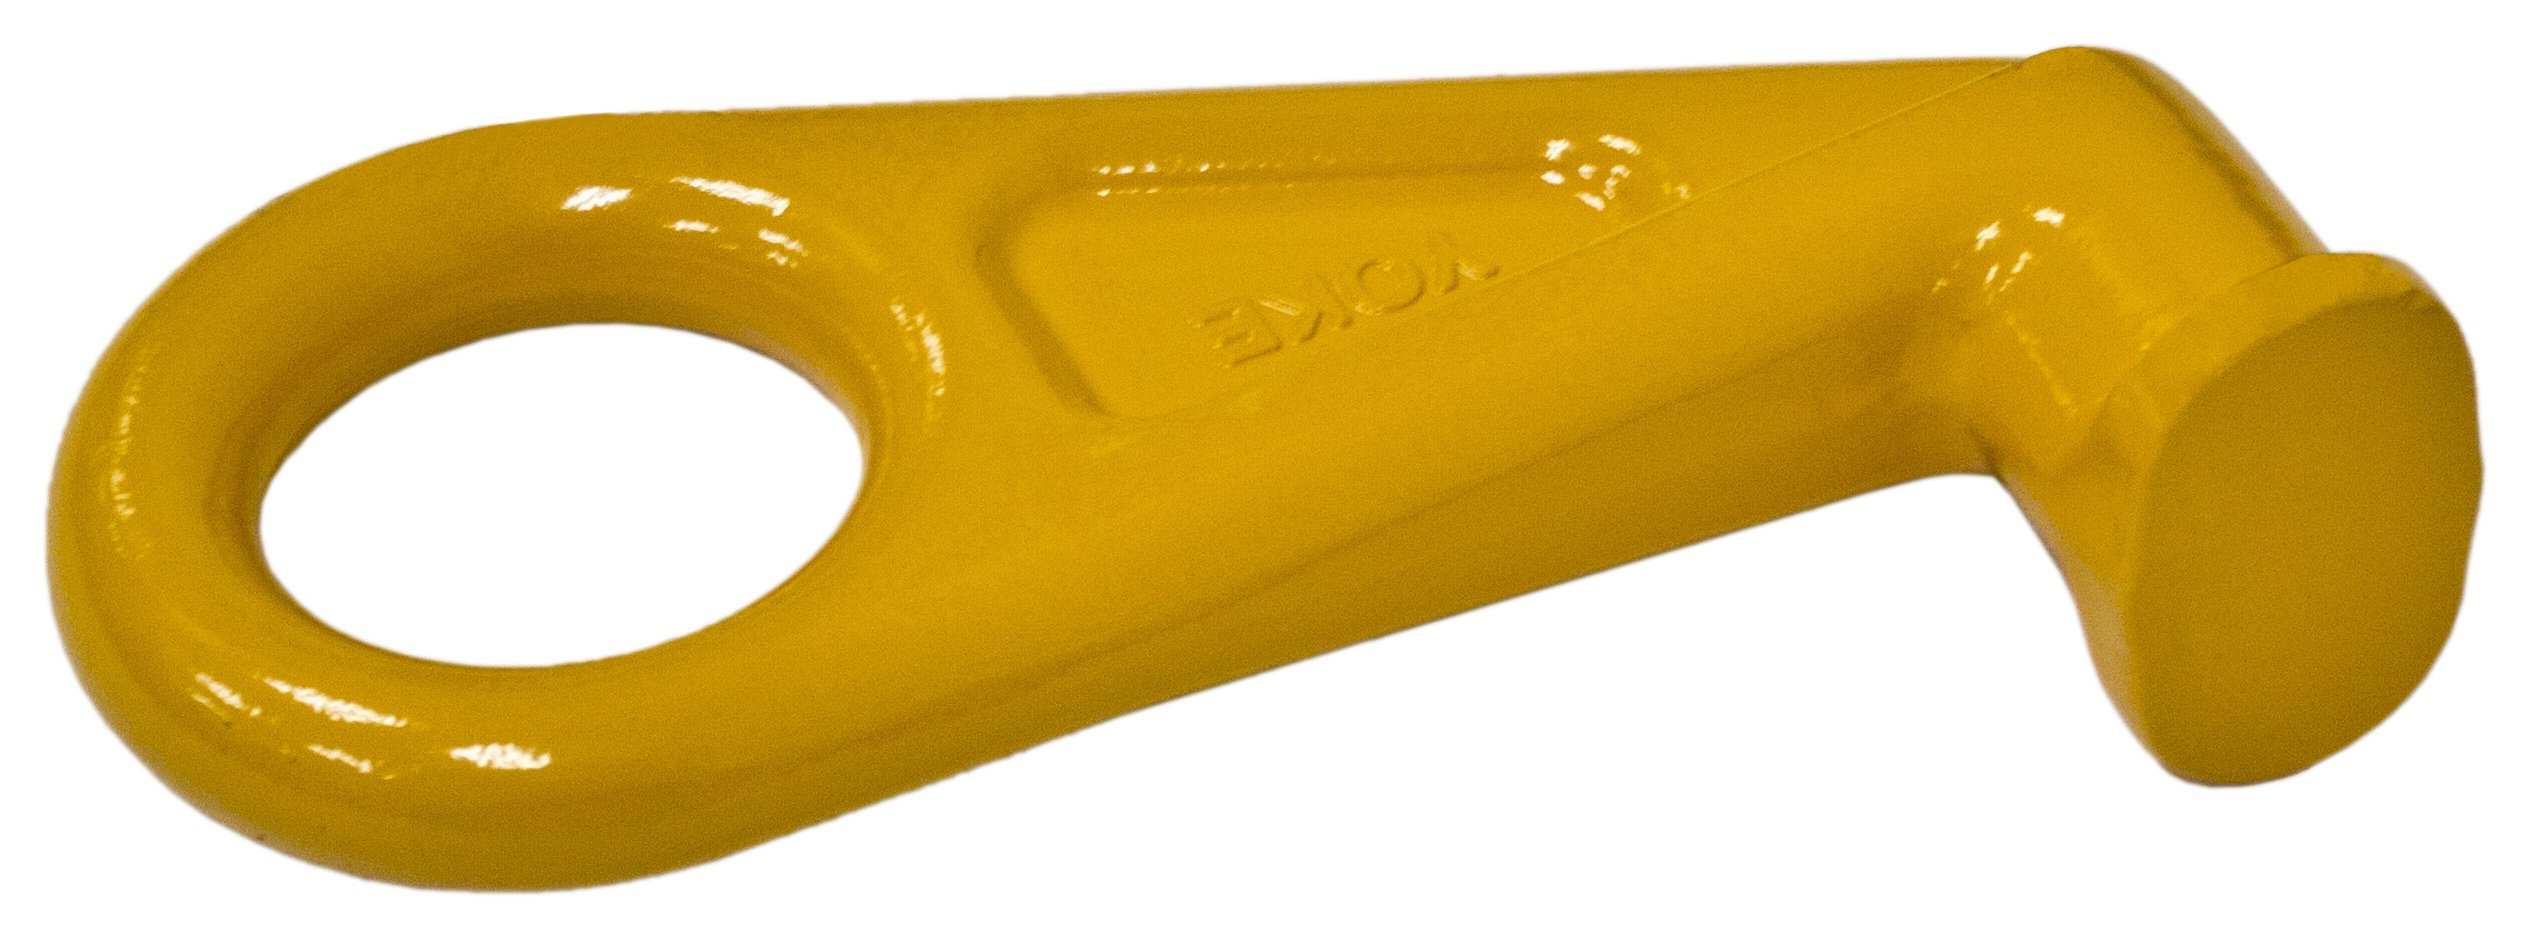 Yoke G8-179-STR Sea Container Hook, Straight Version, Yellow